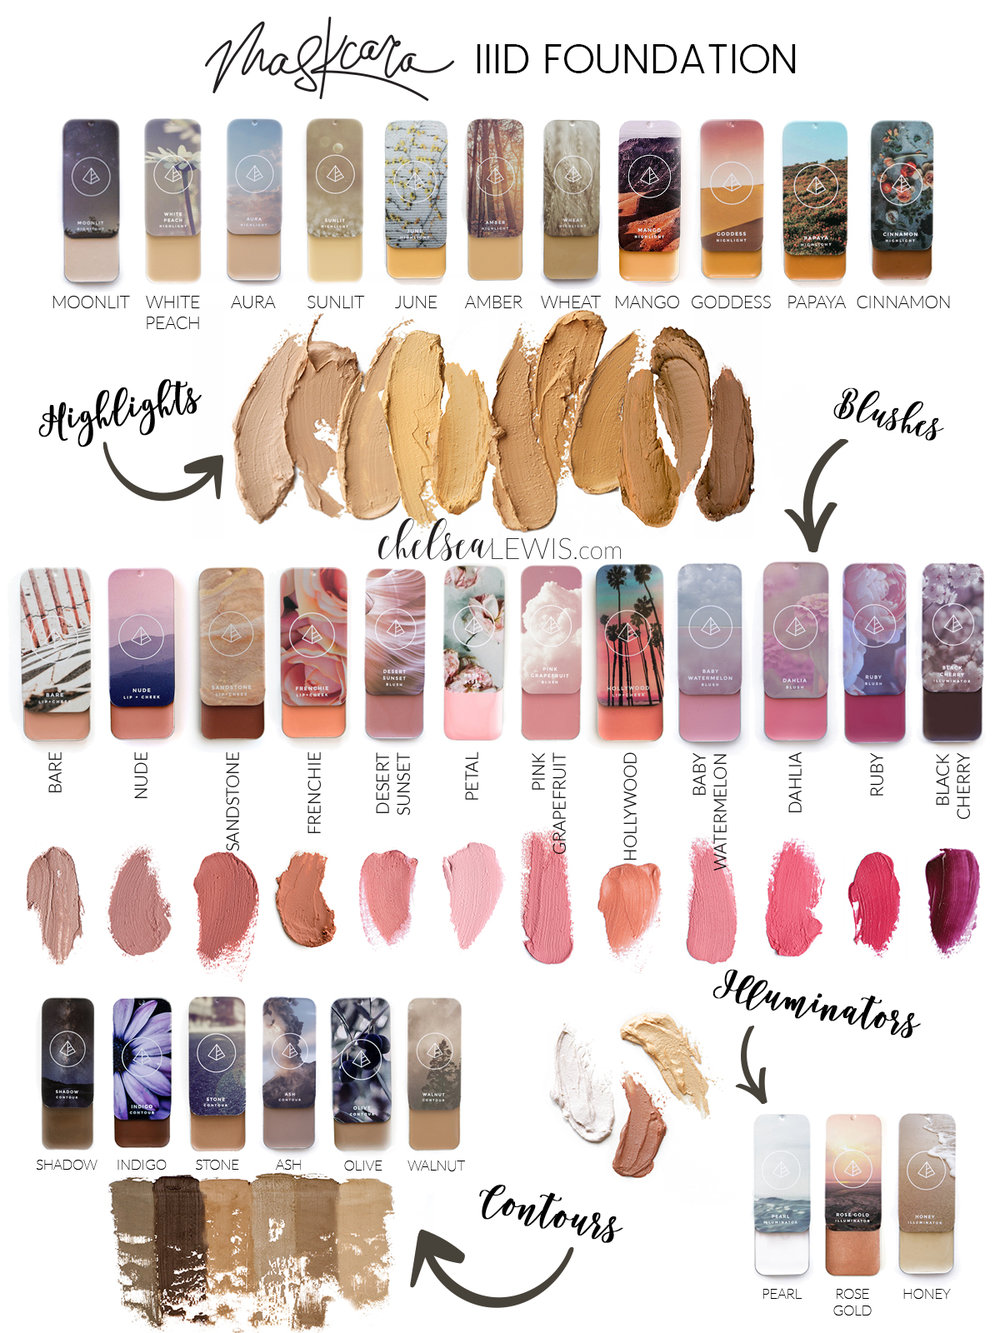 Maskcara IIID Foundation Shade Chart